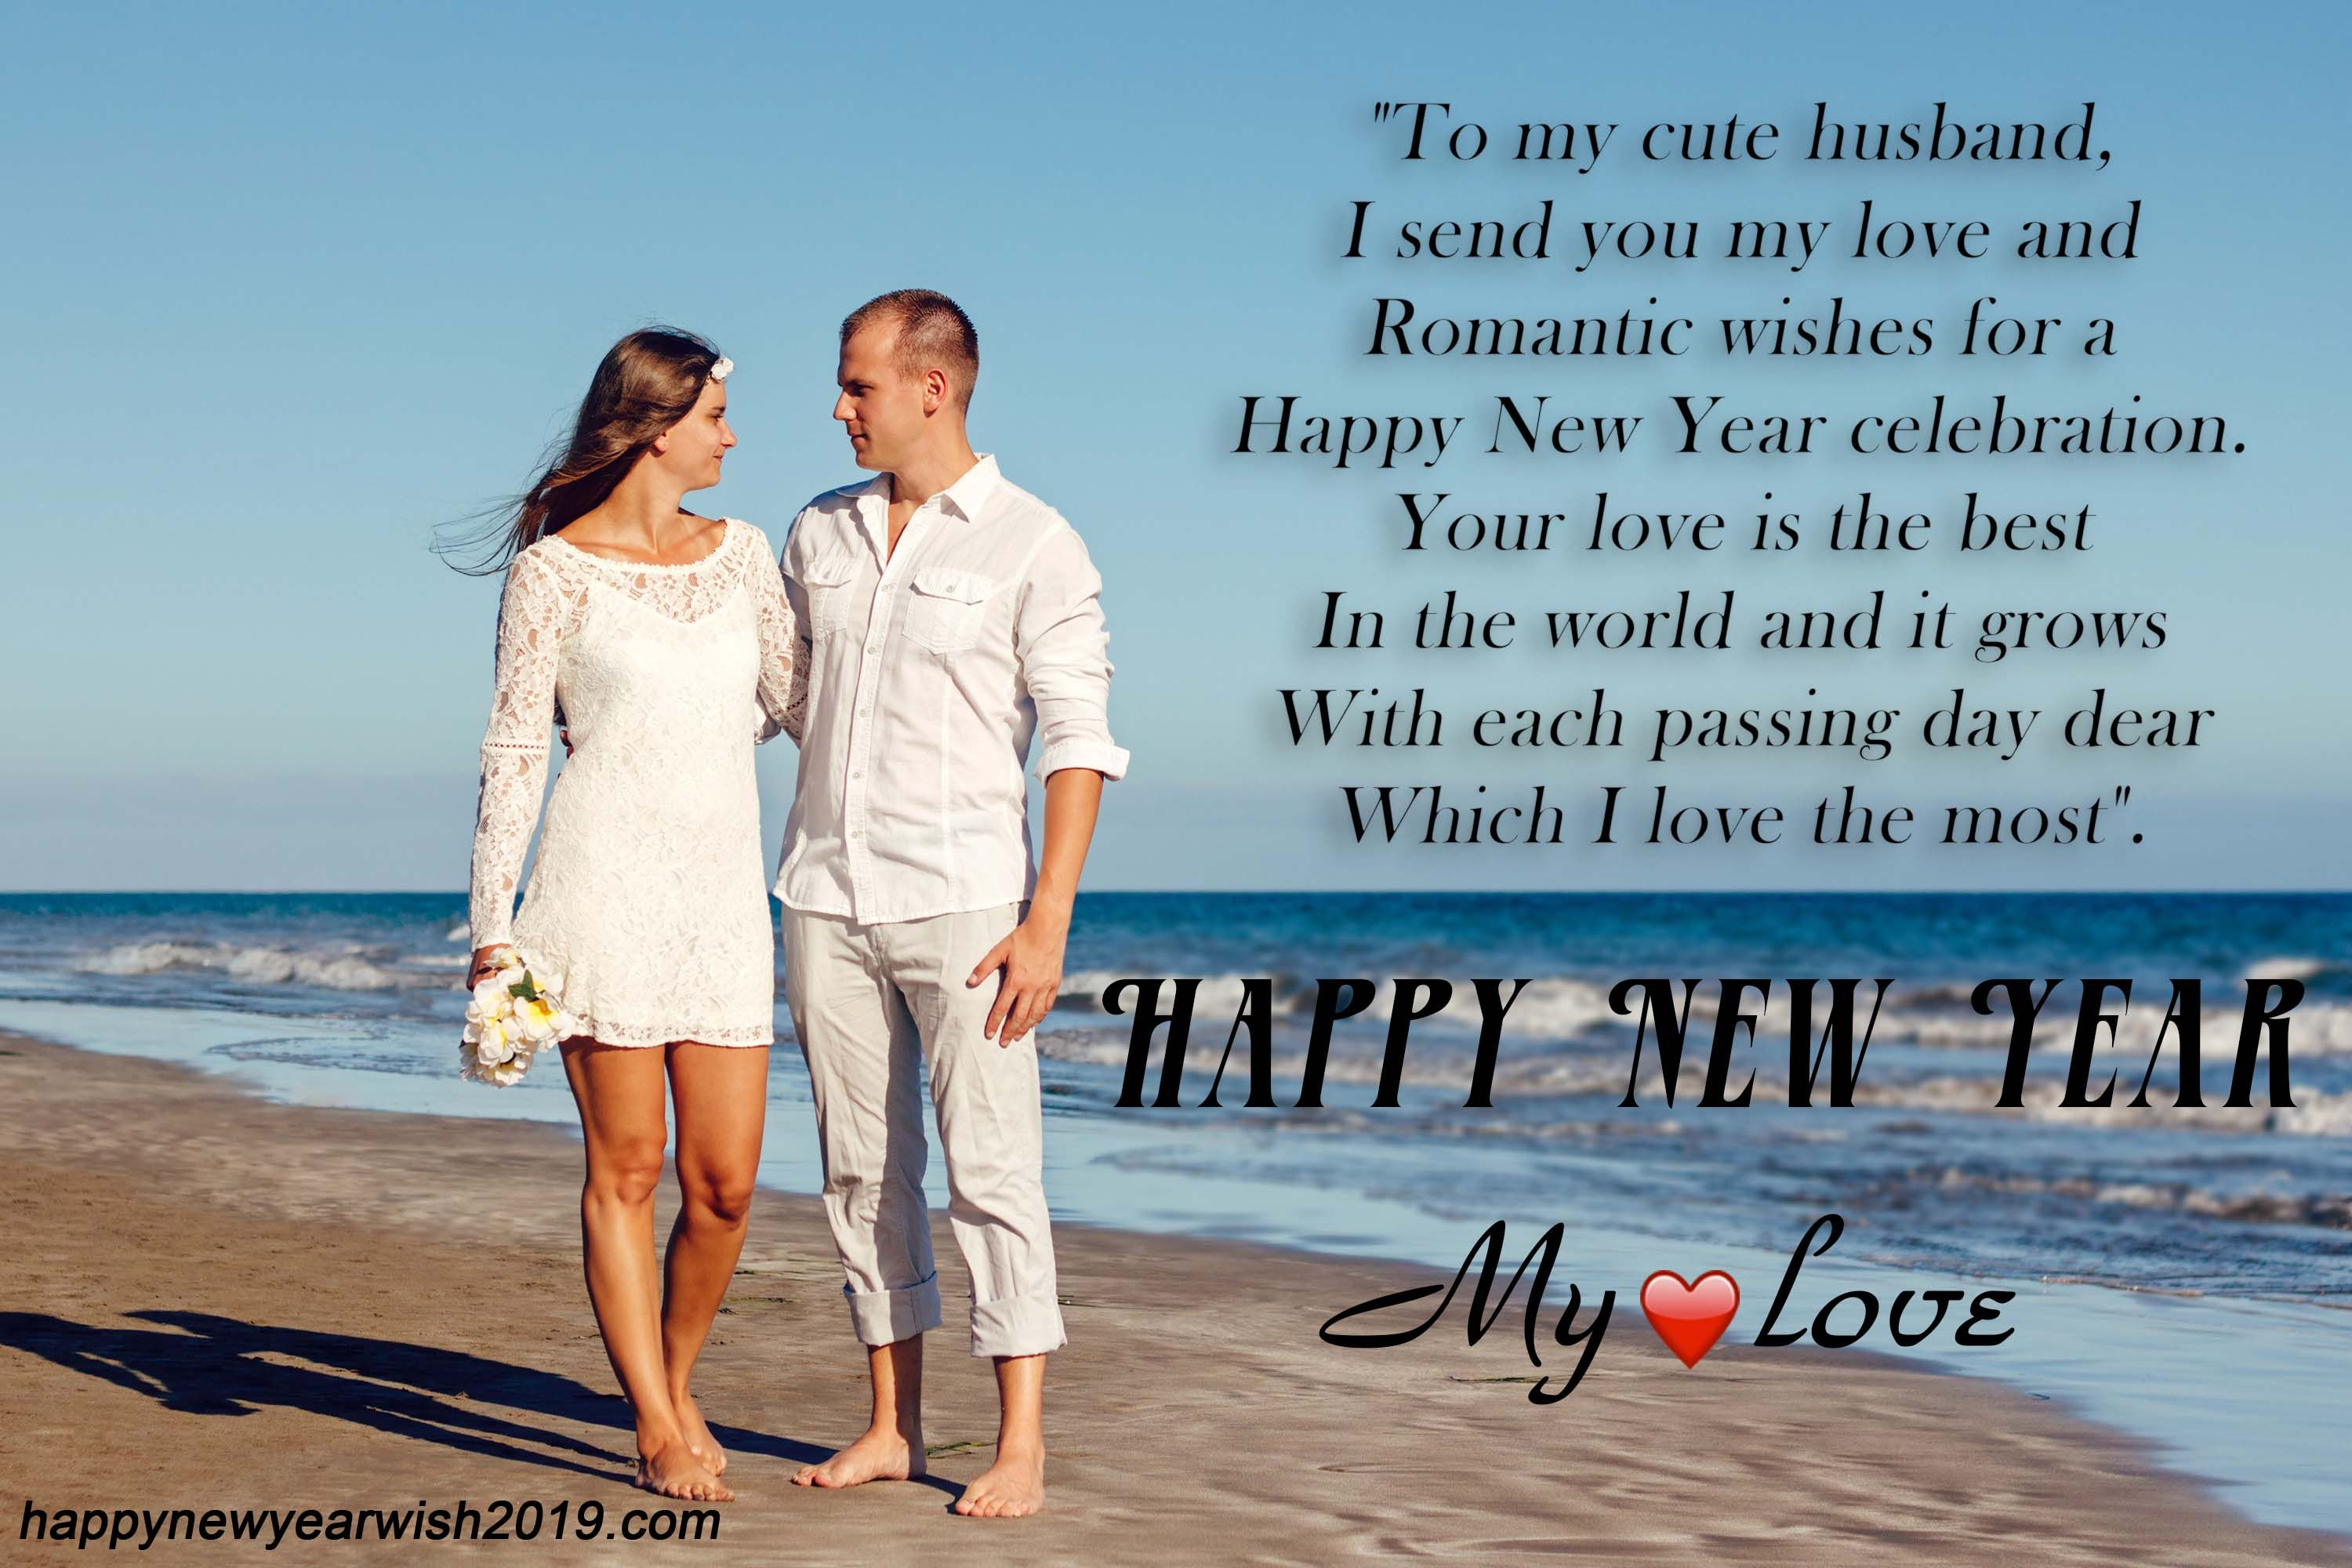 Pin by New year Stuff on New year wishes  New year love messages